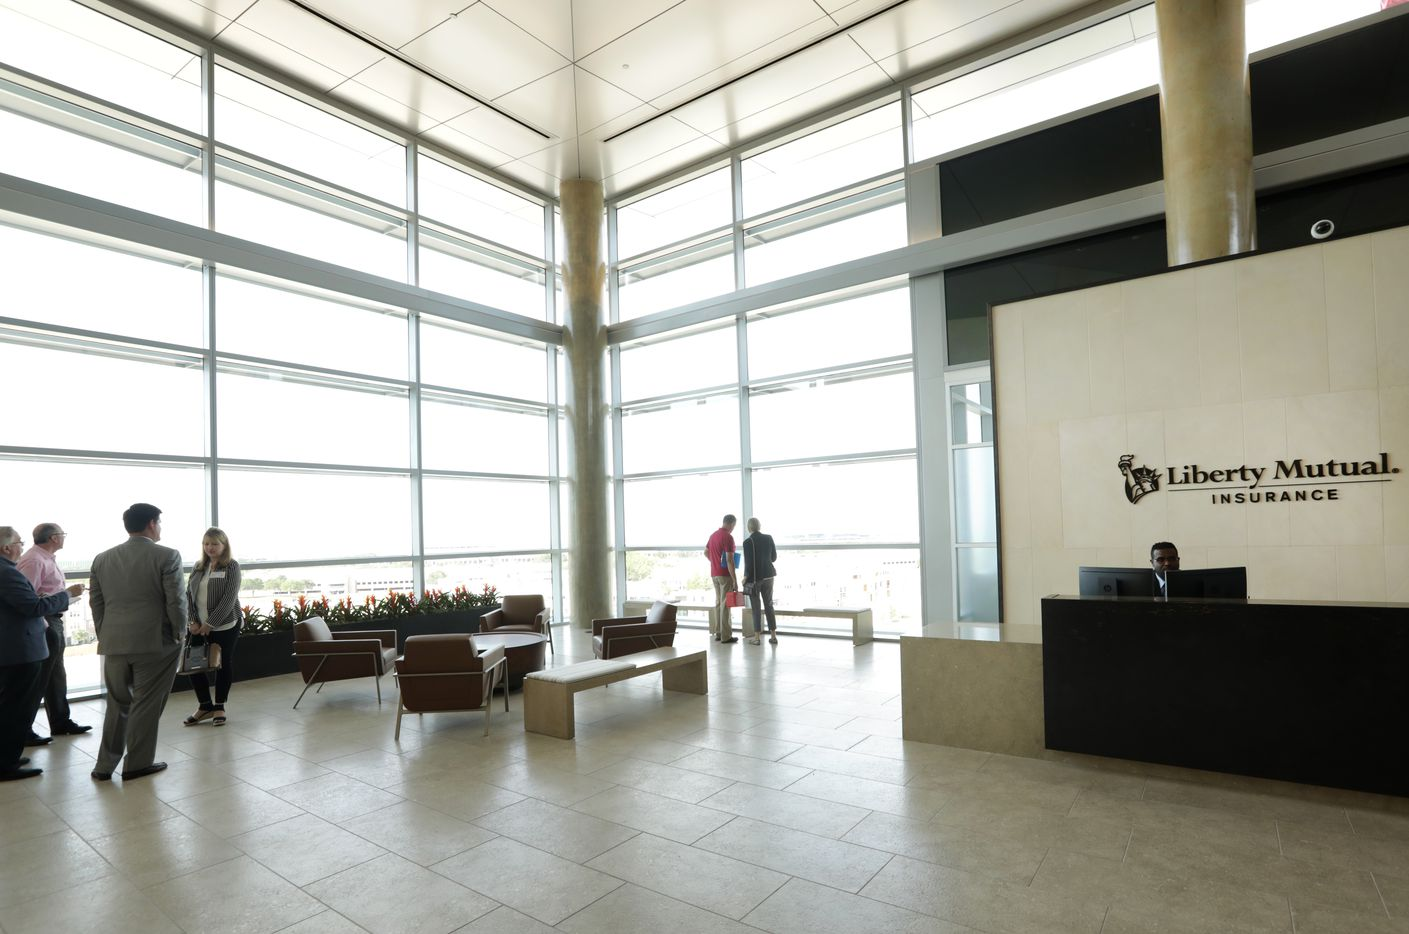 The Liberty Mutual Insurance reception area on the eighth floor where most visitors and employees enter.